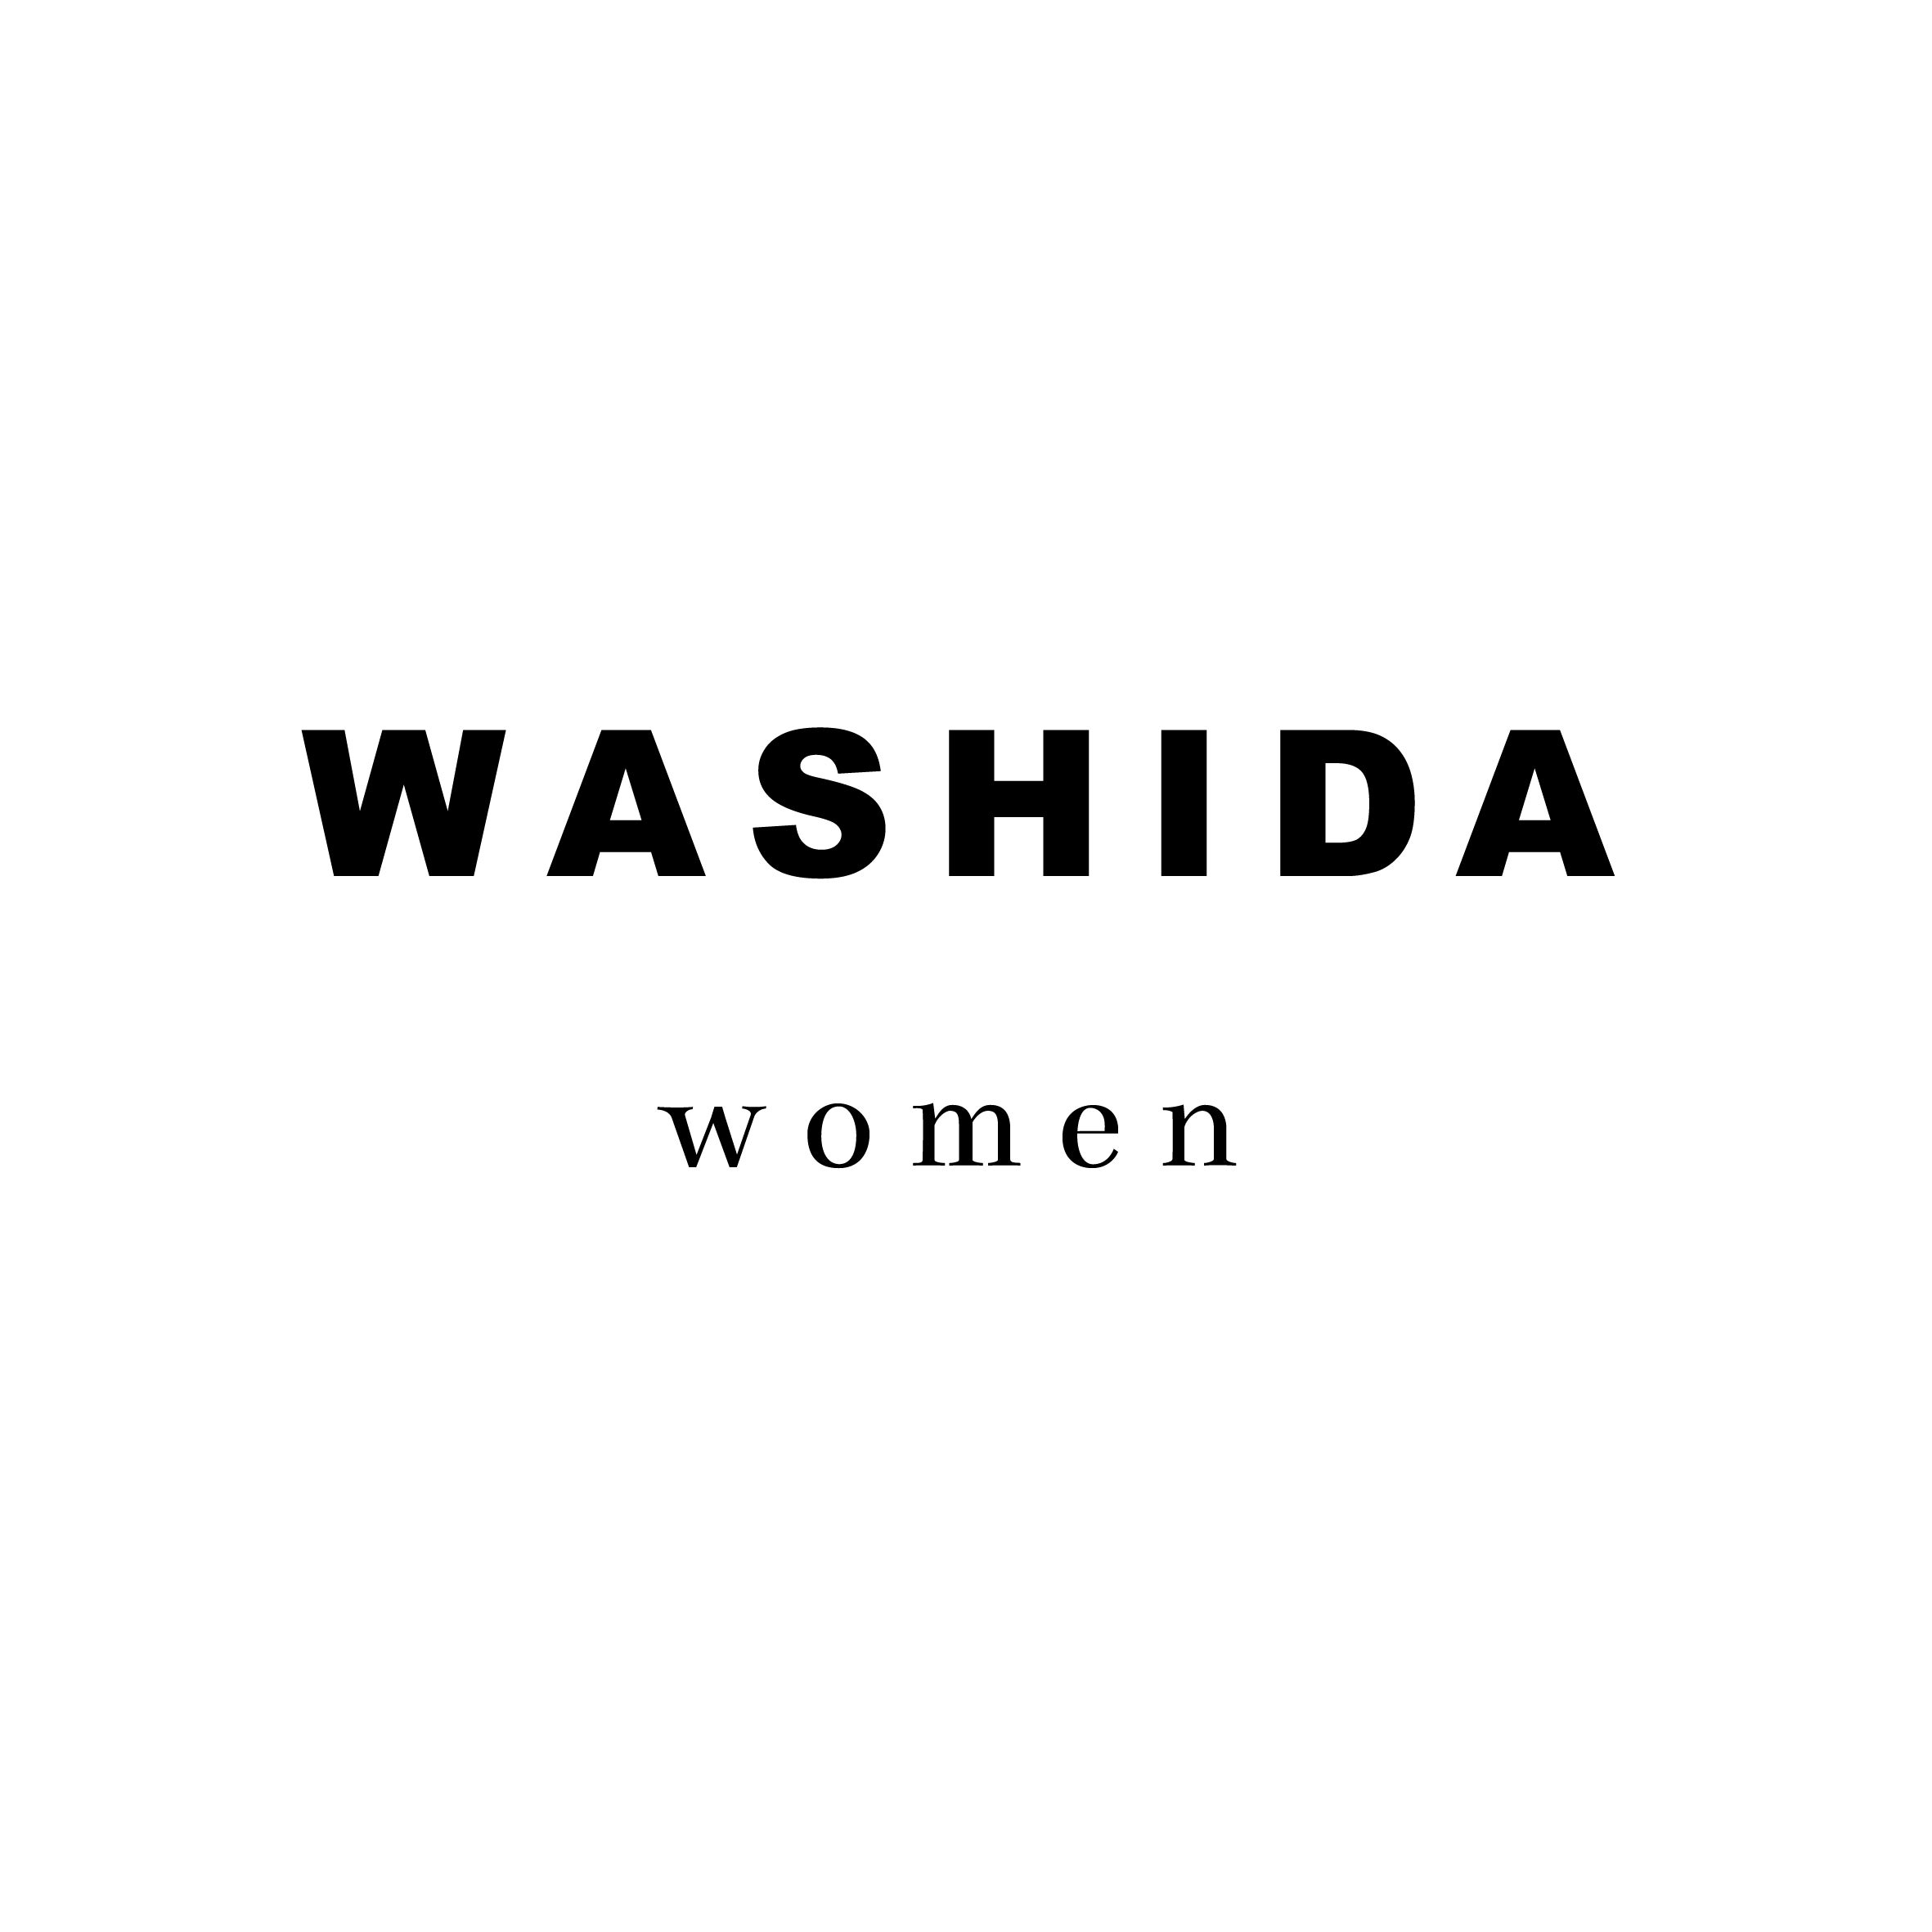 WASHIDA women